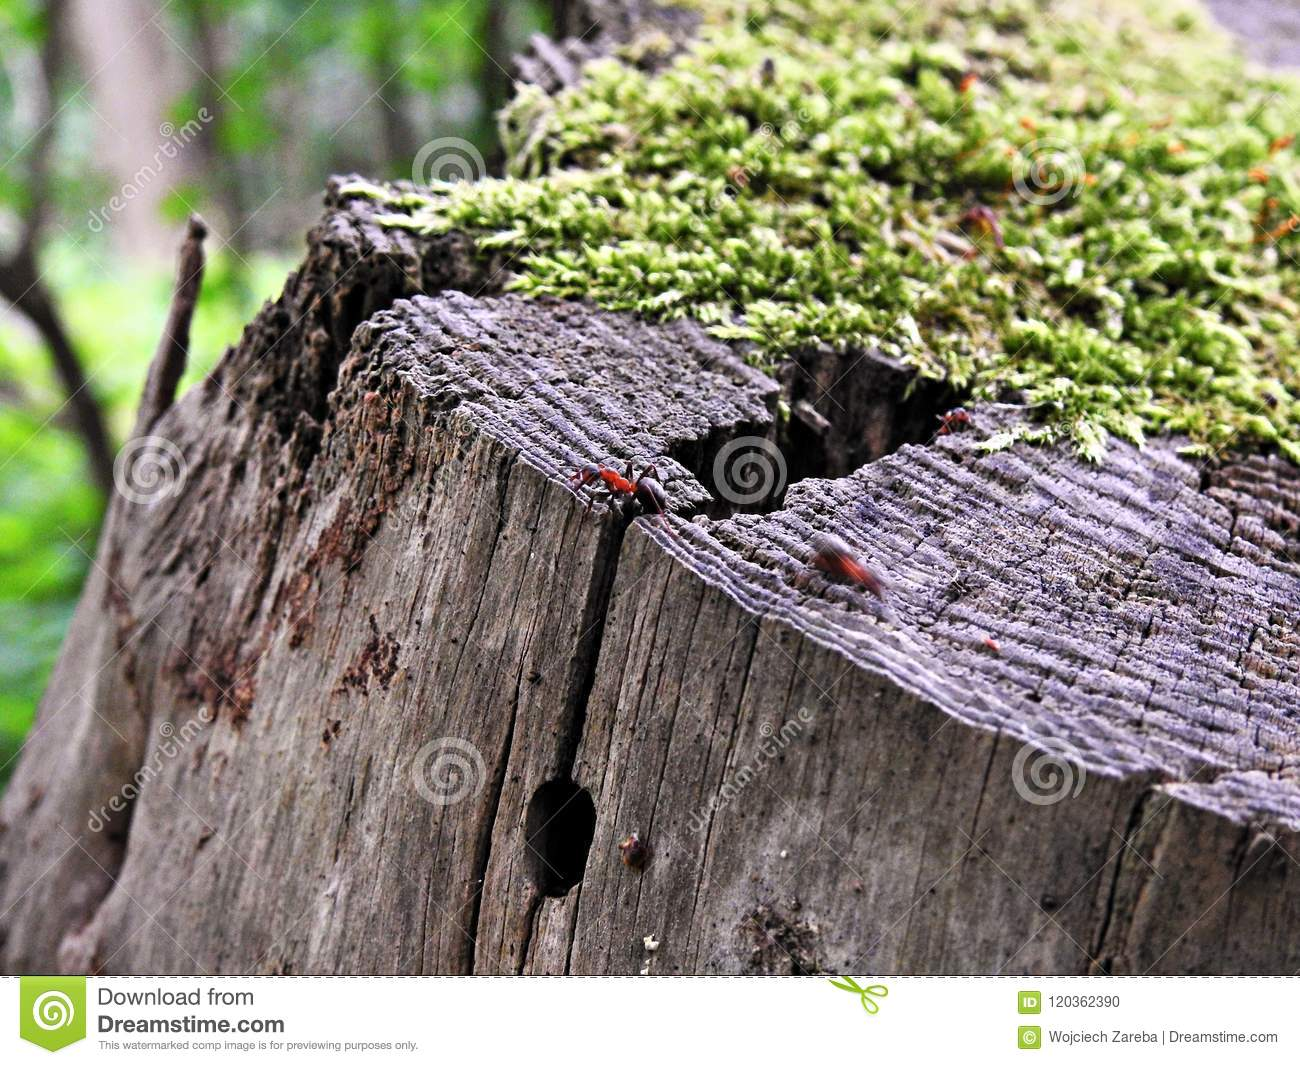 Ant on a moss covered tree trunk